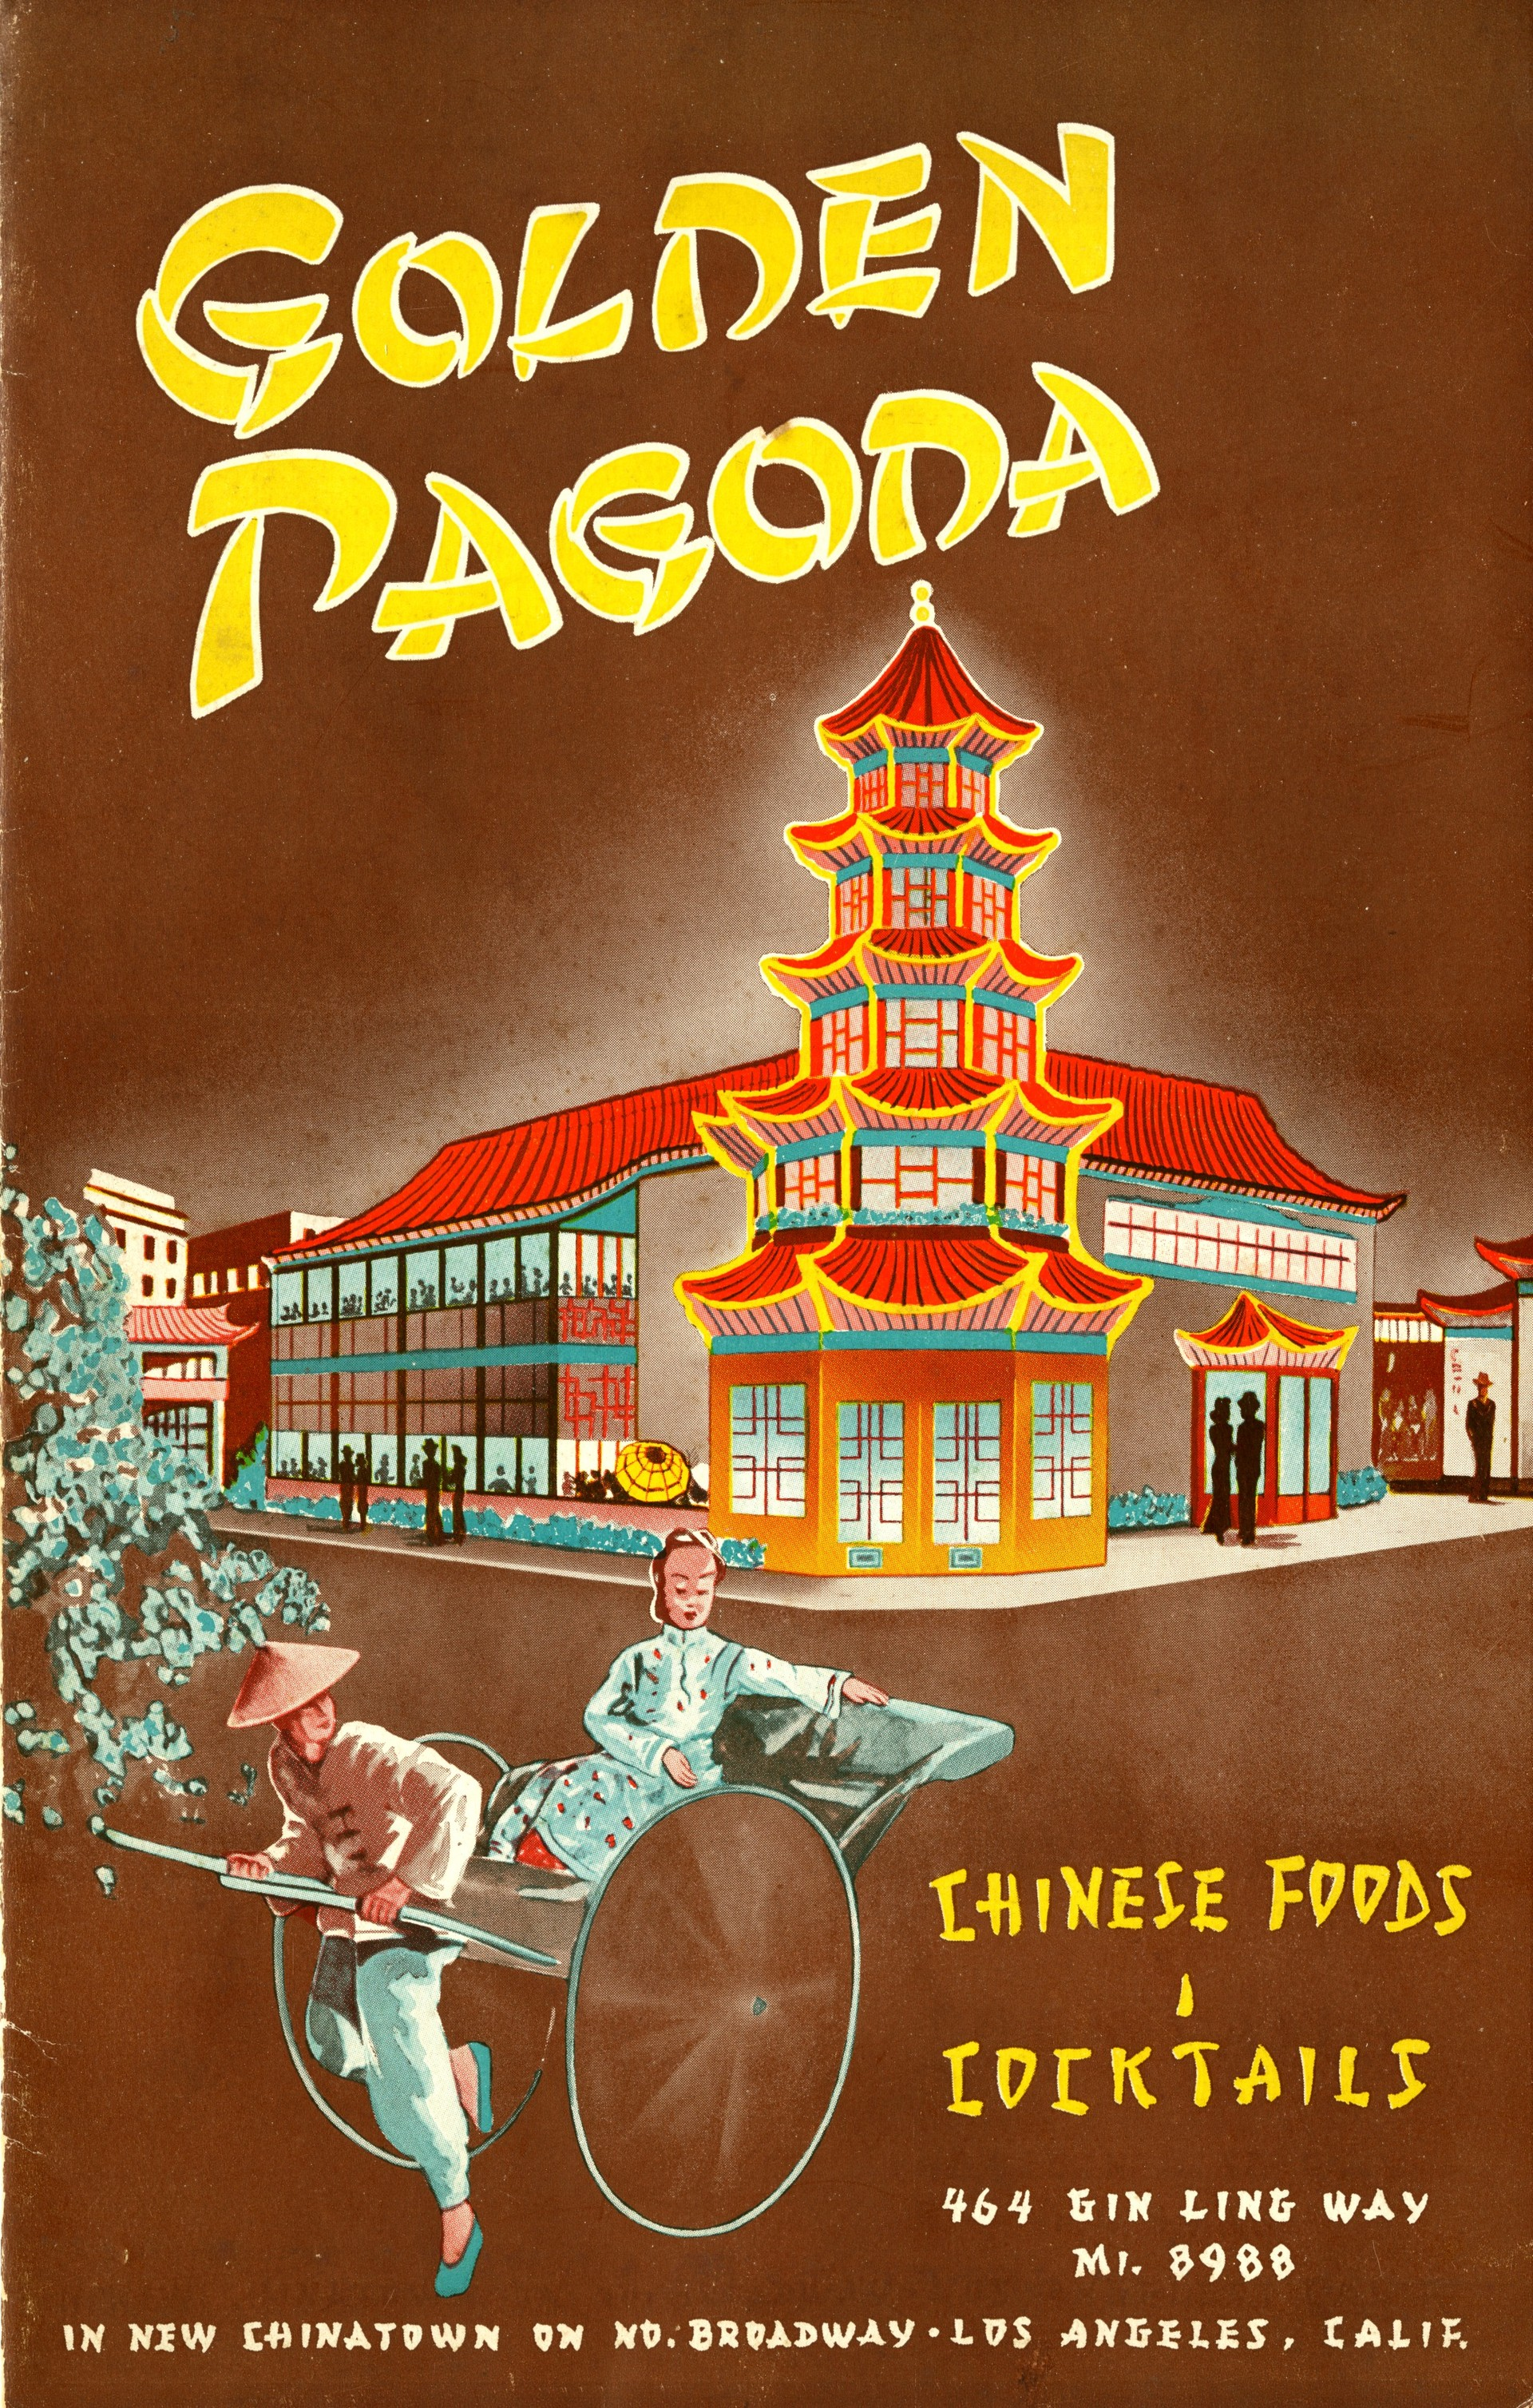 Menu cover from the Golden Pagoda restaurant.